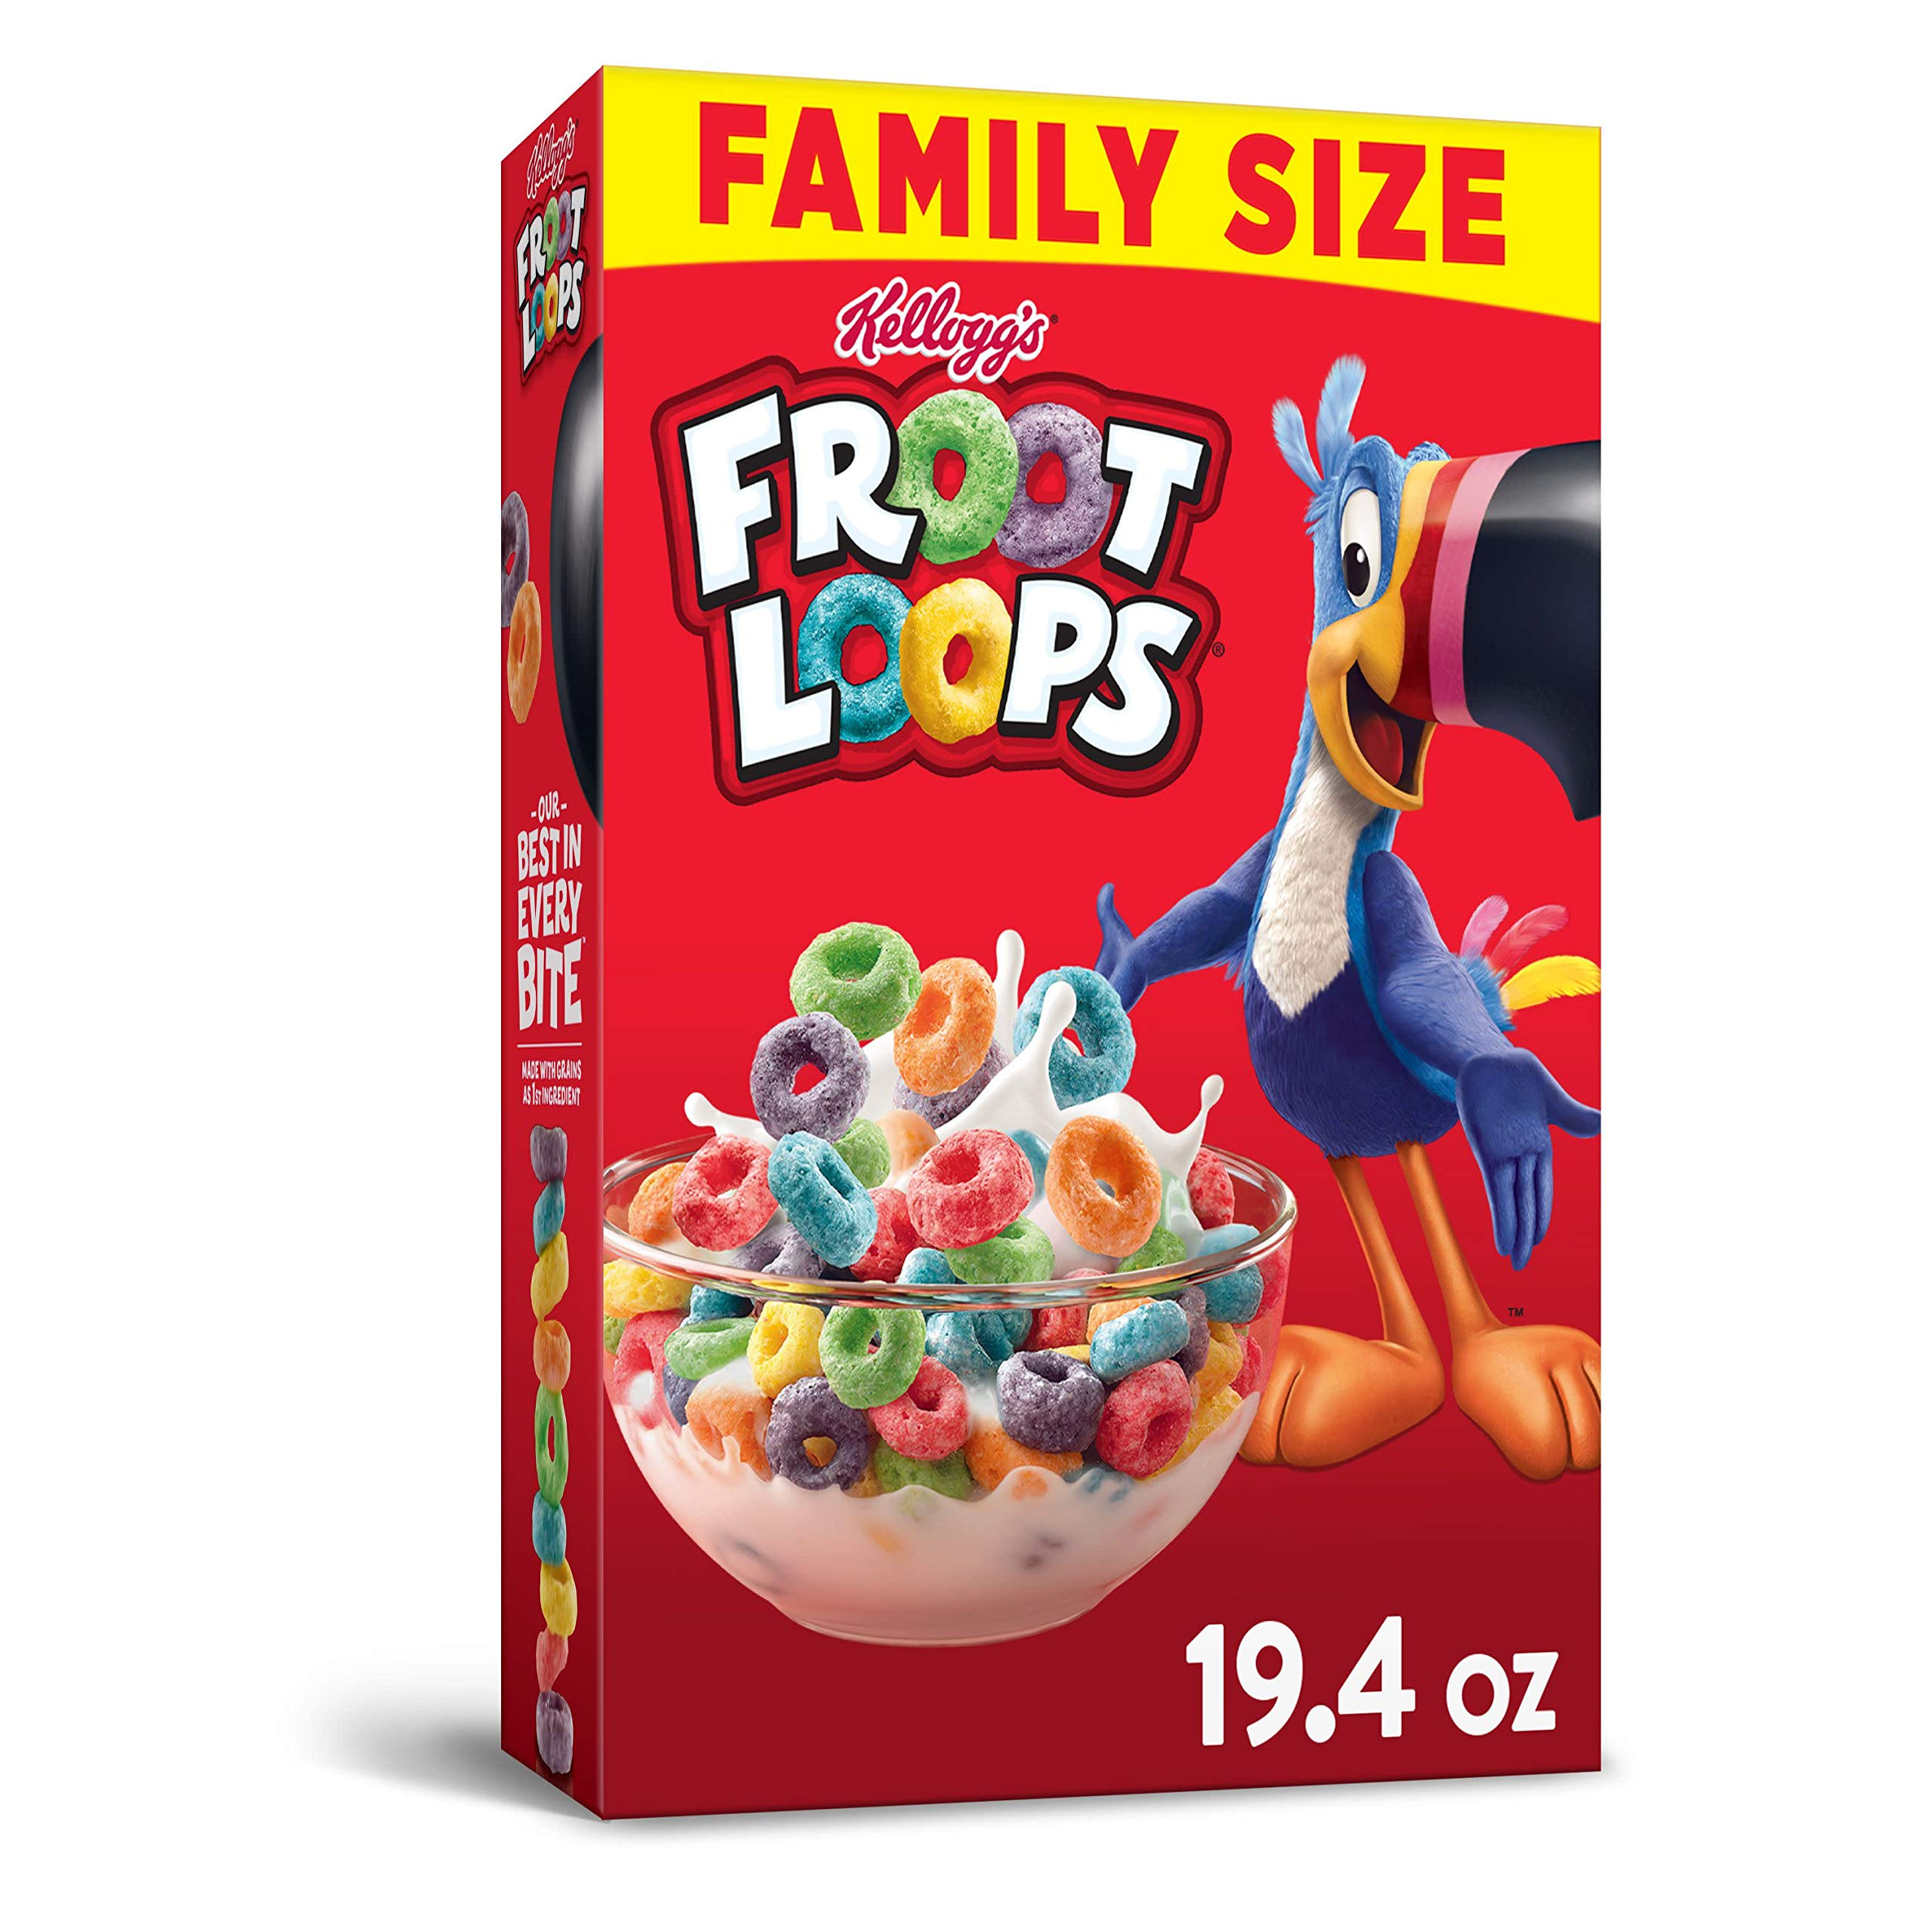 Kellogg's Froot Loops, Breakfast Breakfast Cereal, Original, Excellent Source of Vitamin C, Family Size, 19.4oz Box